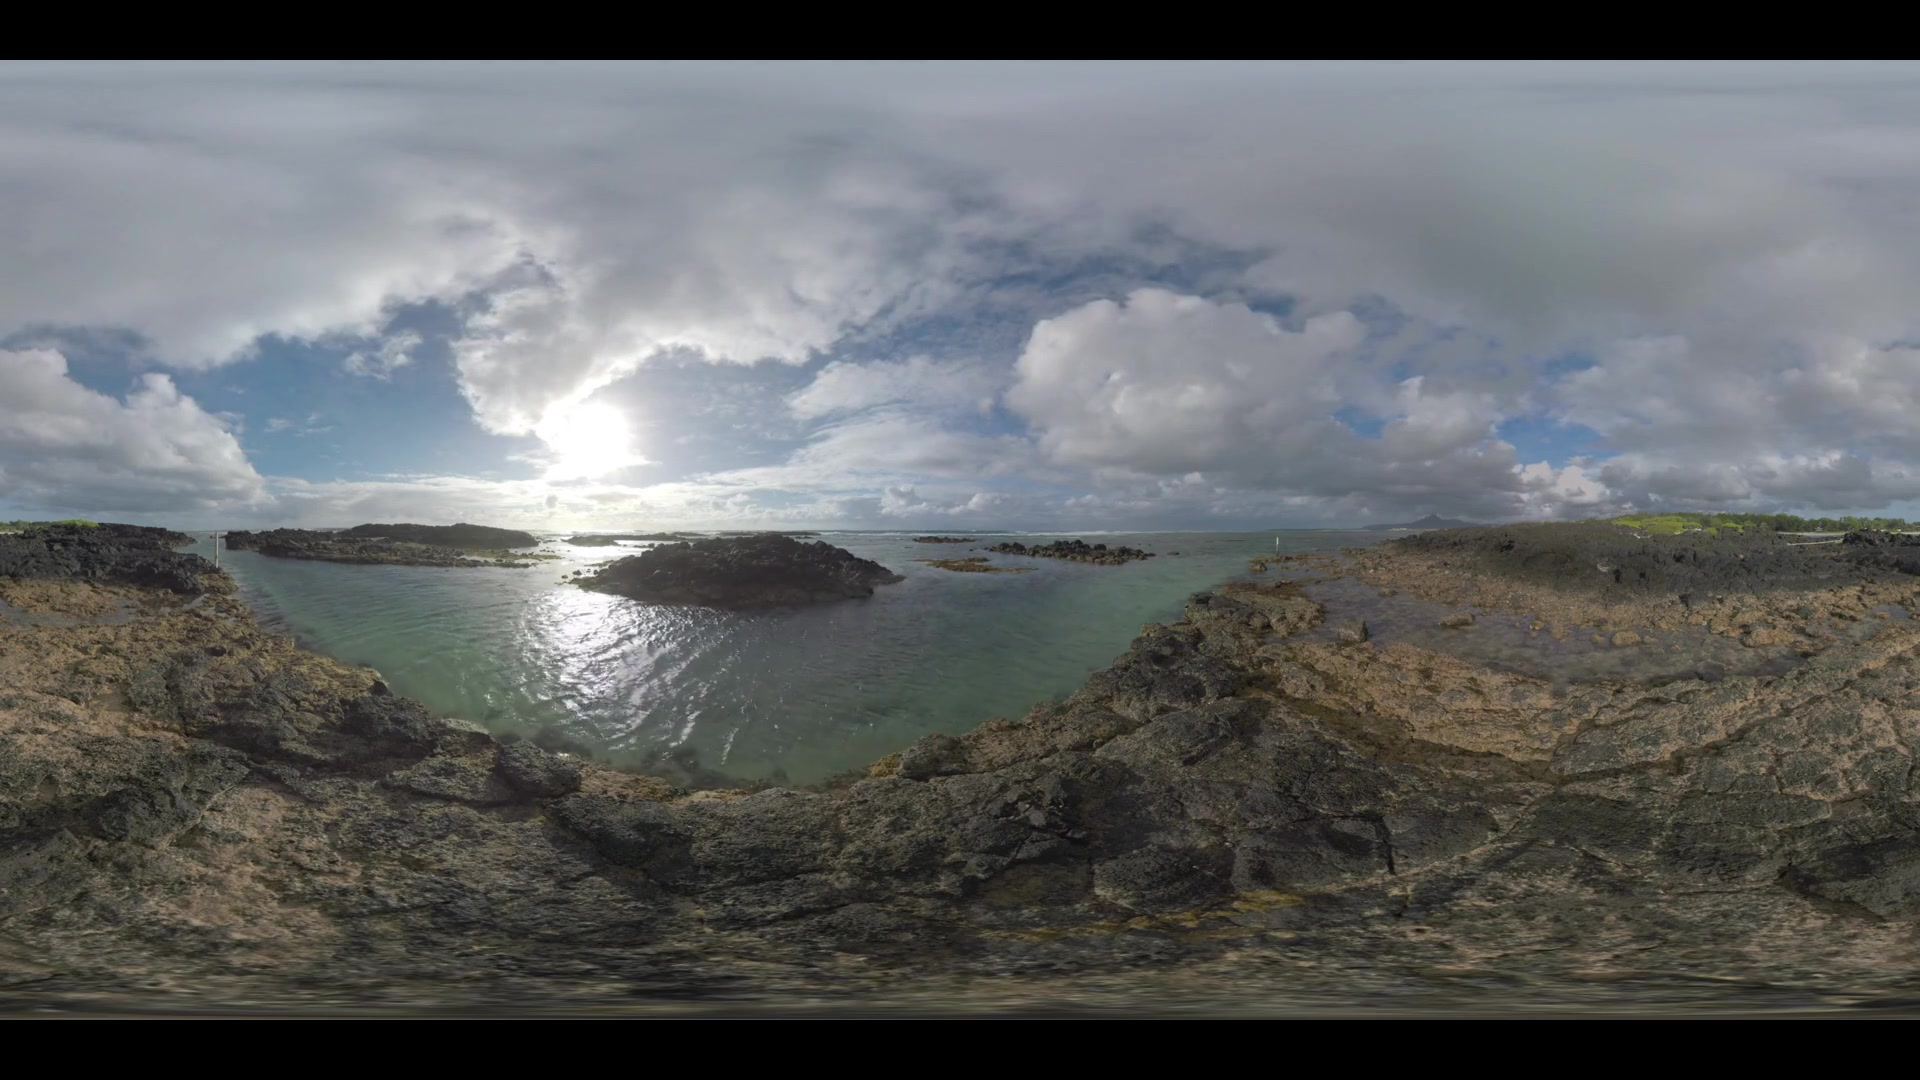 360 VR video. Waterscape and landscape of Mauritius. Ocean shallow water and black rocks on the coast, clouds sailing over the island